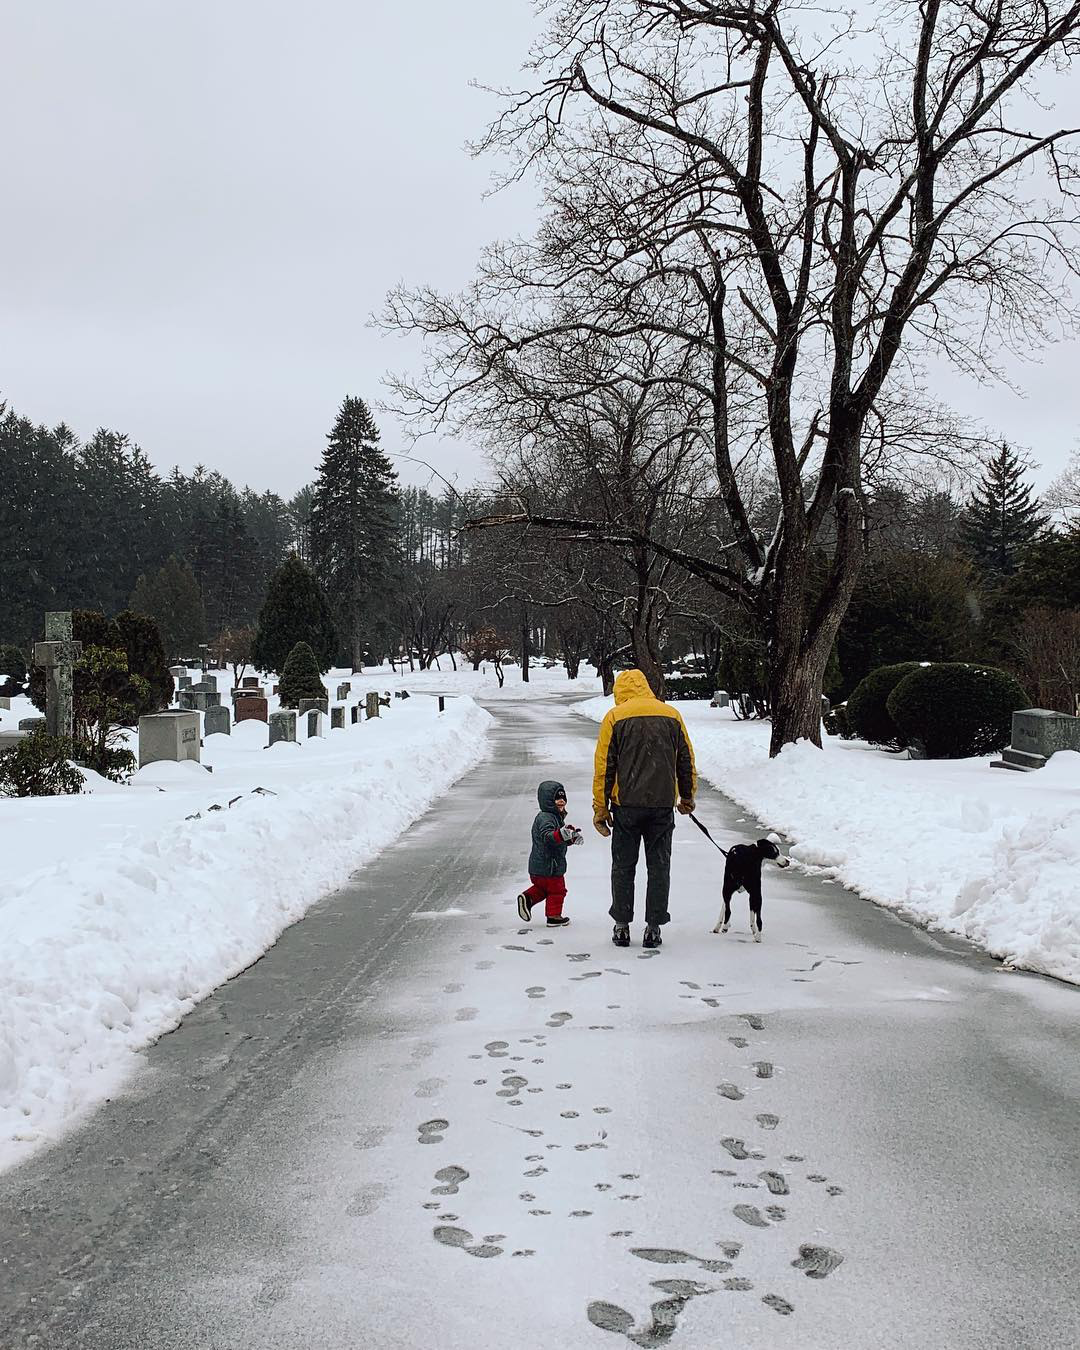 Man in yellow rain coat walking a black and white dog, with a 3 year old walk through a snowy graveyard.